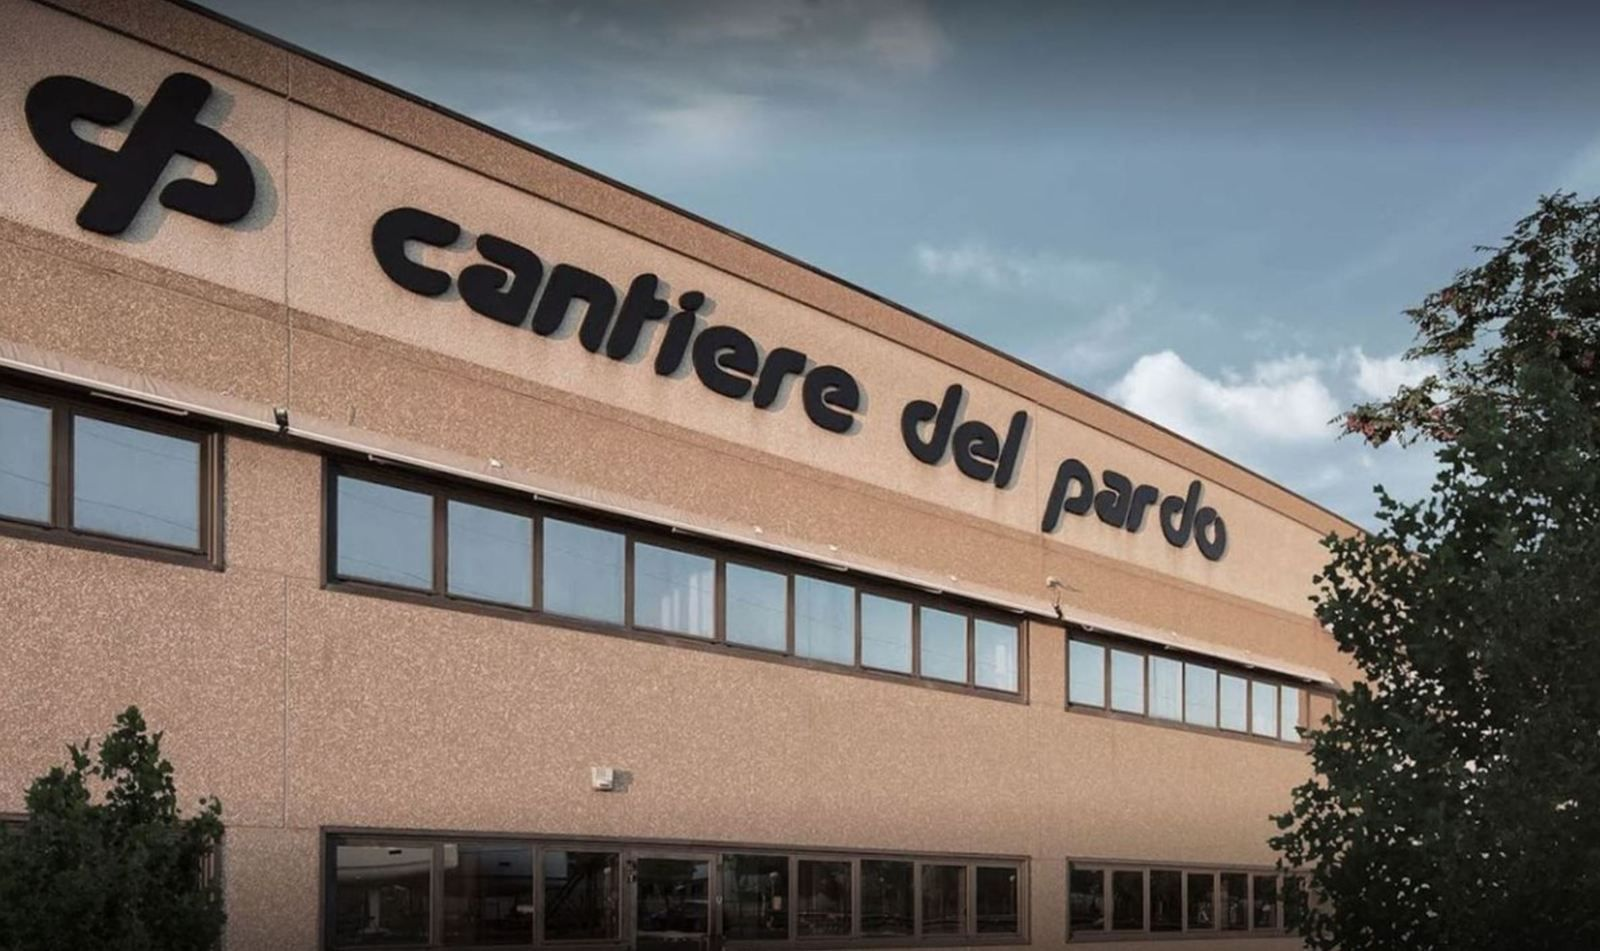 Cantiere del Pardo - Entry into the capital of the investment fund Wise Equity